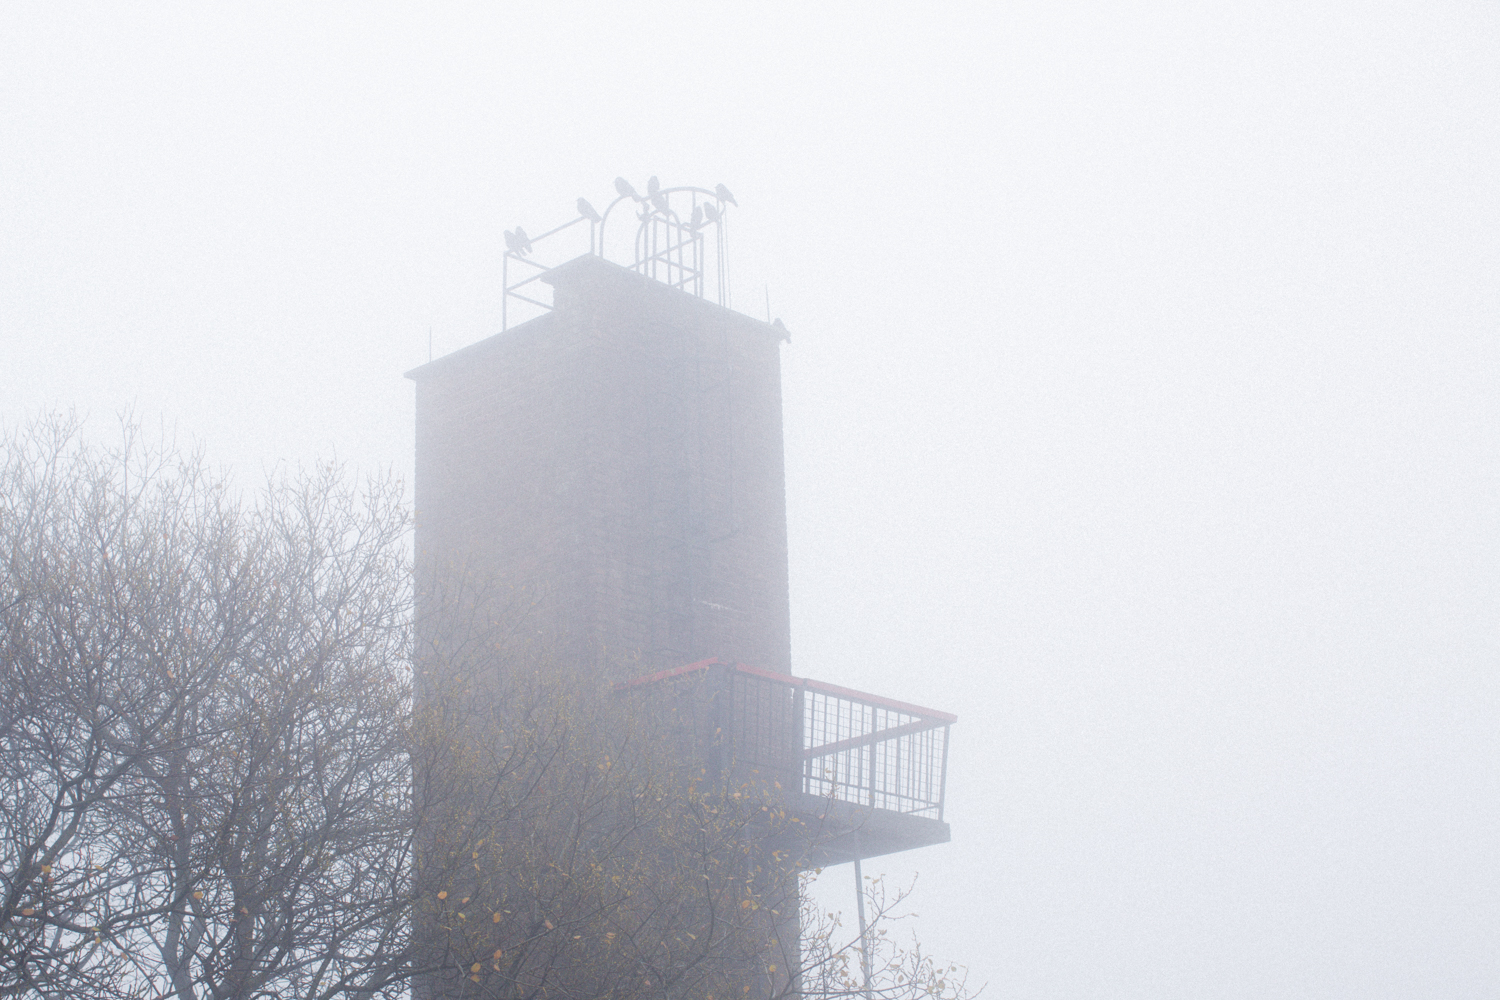 The fire tower creates a dominating sensation in the area.